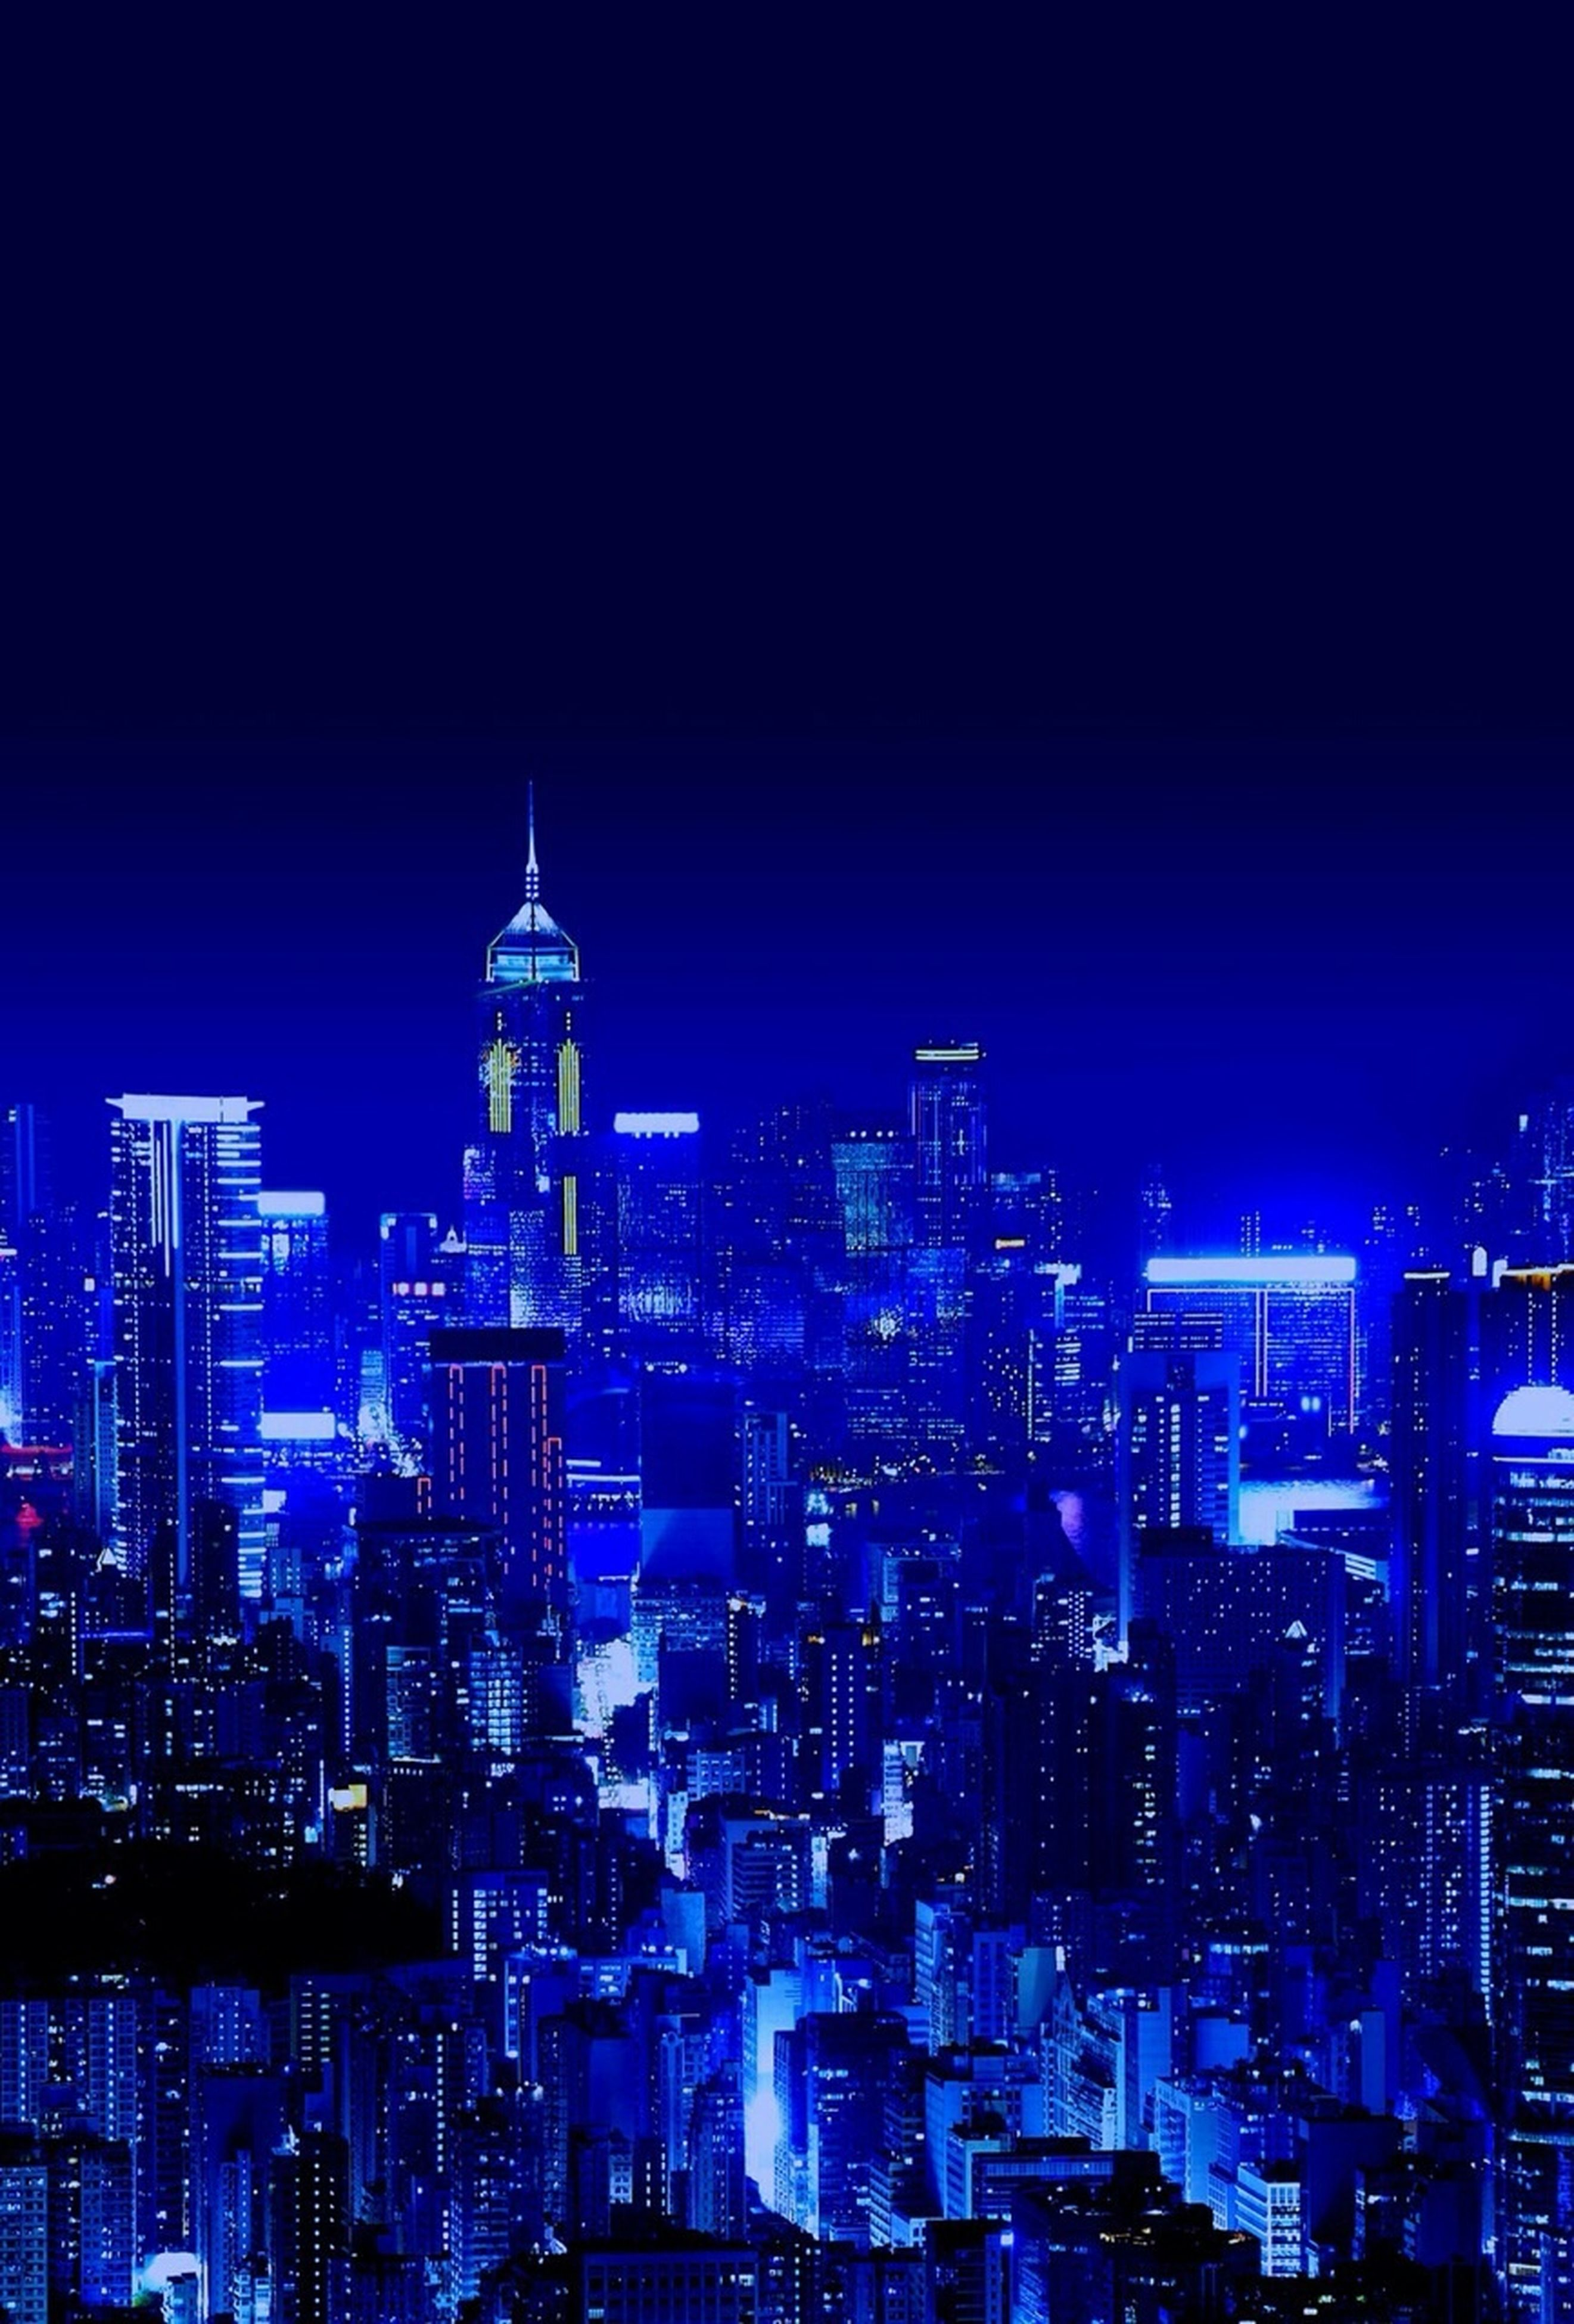 cityscape, city, building exterior, architecture, illuminated, night, built structure, skyscraper, tower, crowded, tall - high, modern, clear sky, office building, capital cities, copy space, high angle view, city life, travel destinations, financial district